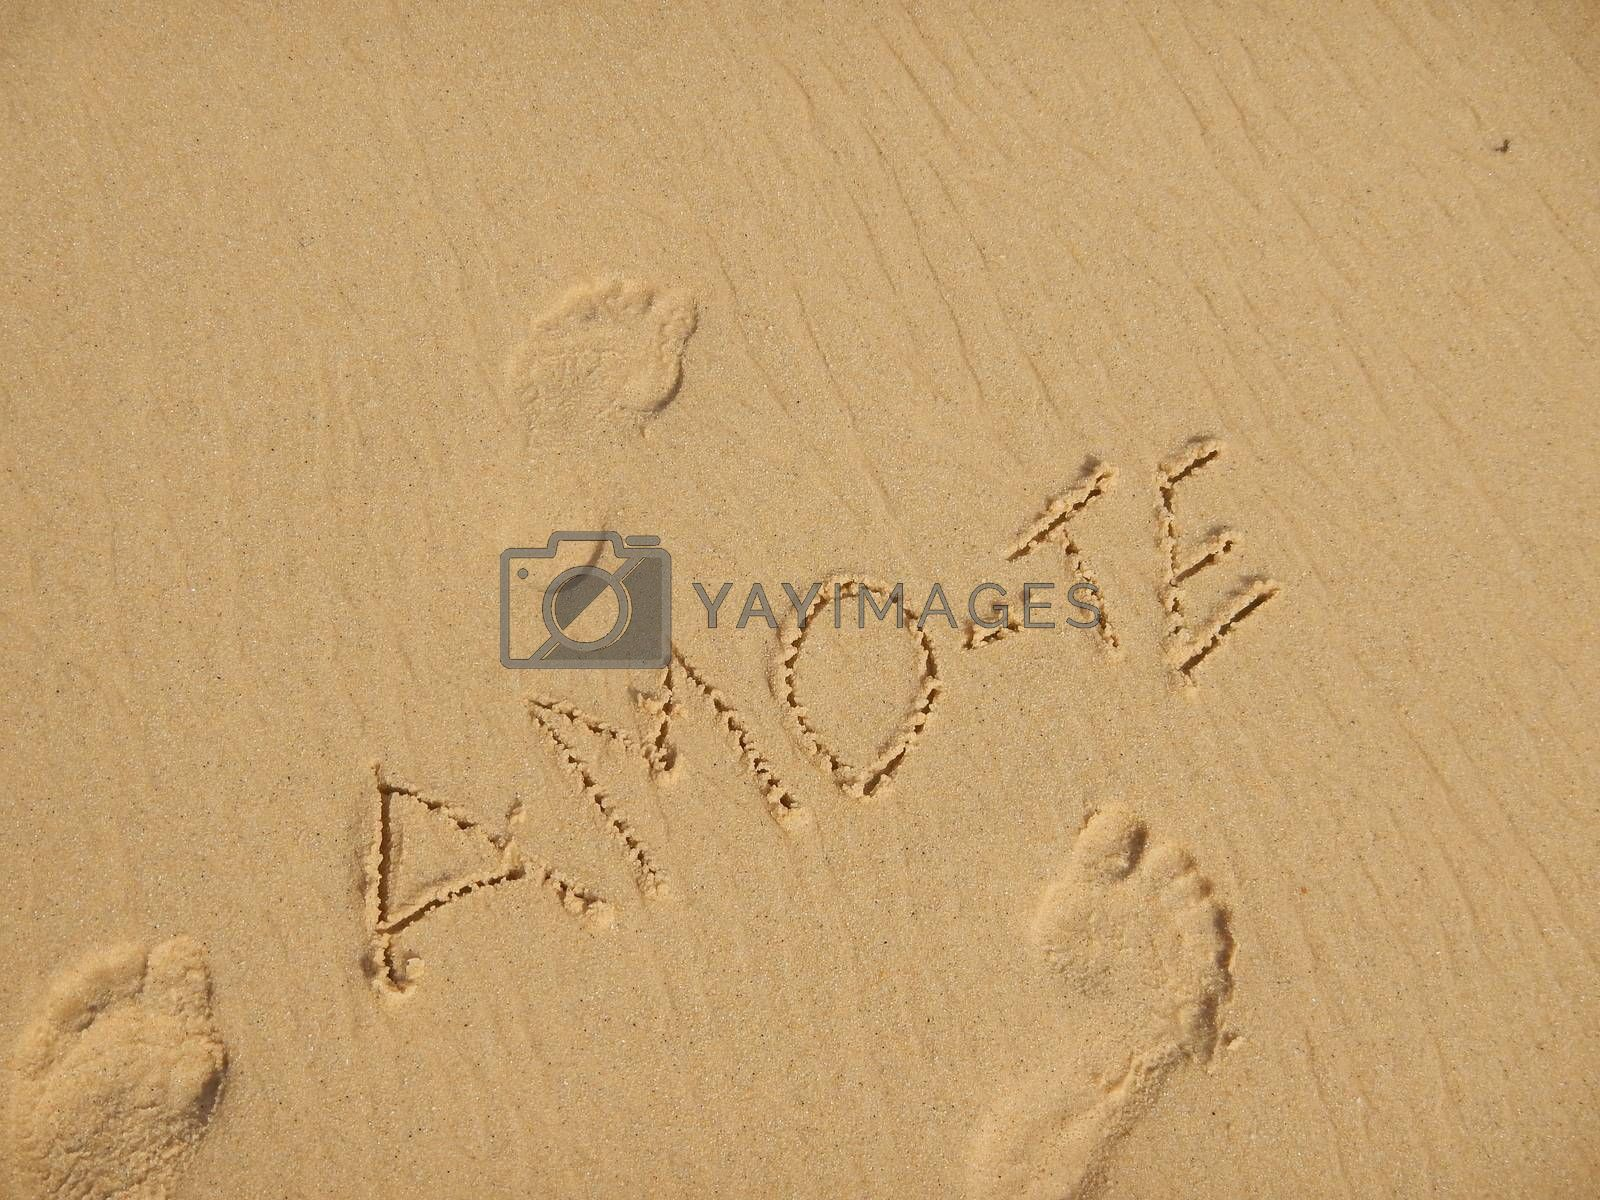 """Message of love in the sand, which he says """" I Love You """""""